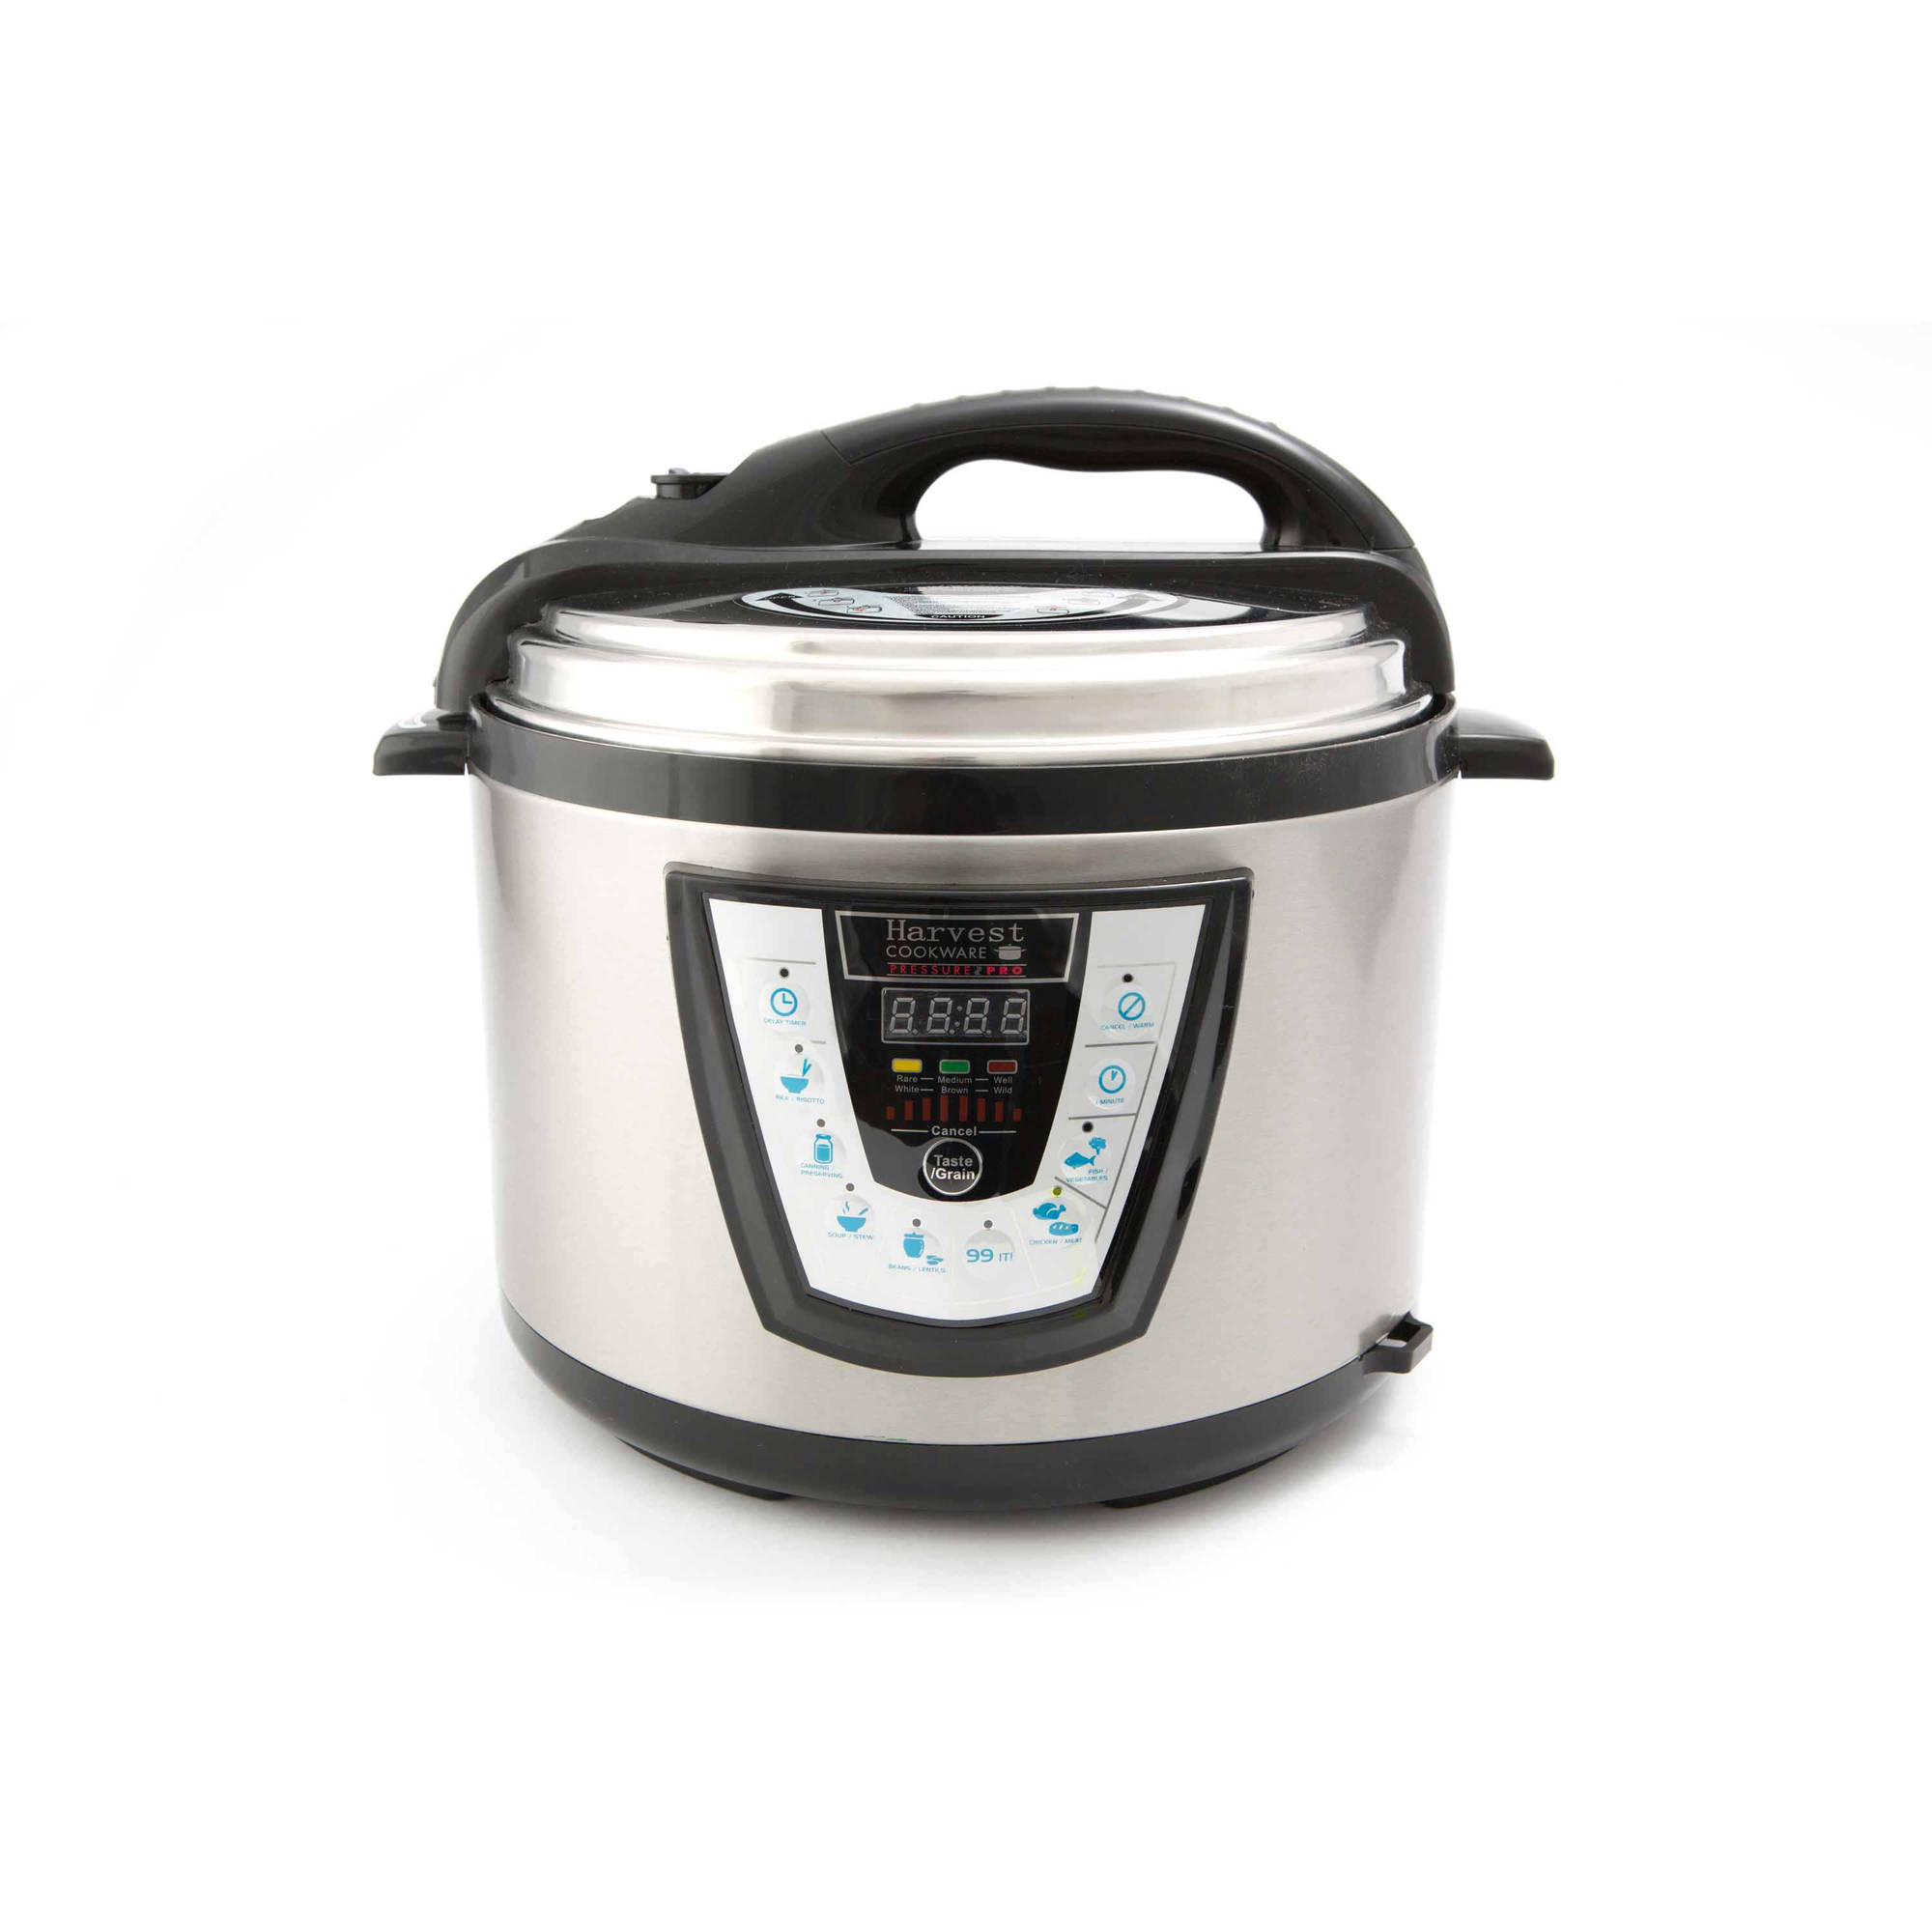 Harvest Cookware Electric Original Pressure Pro 8-Quart Pressure Cooker, Black